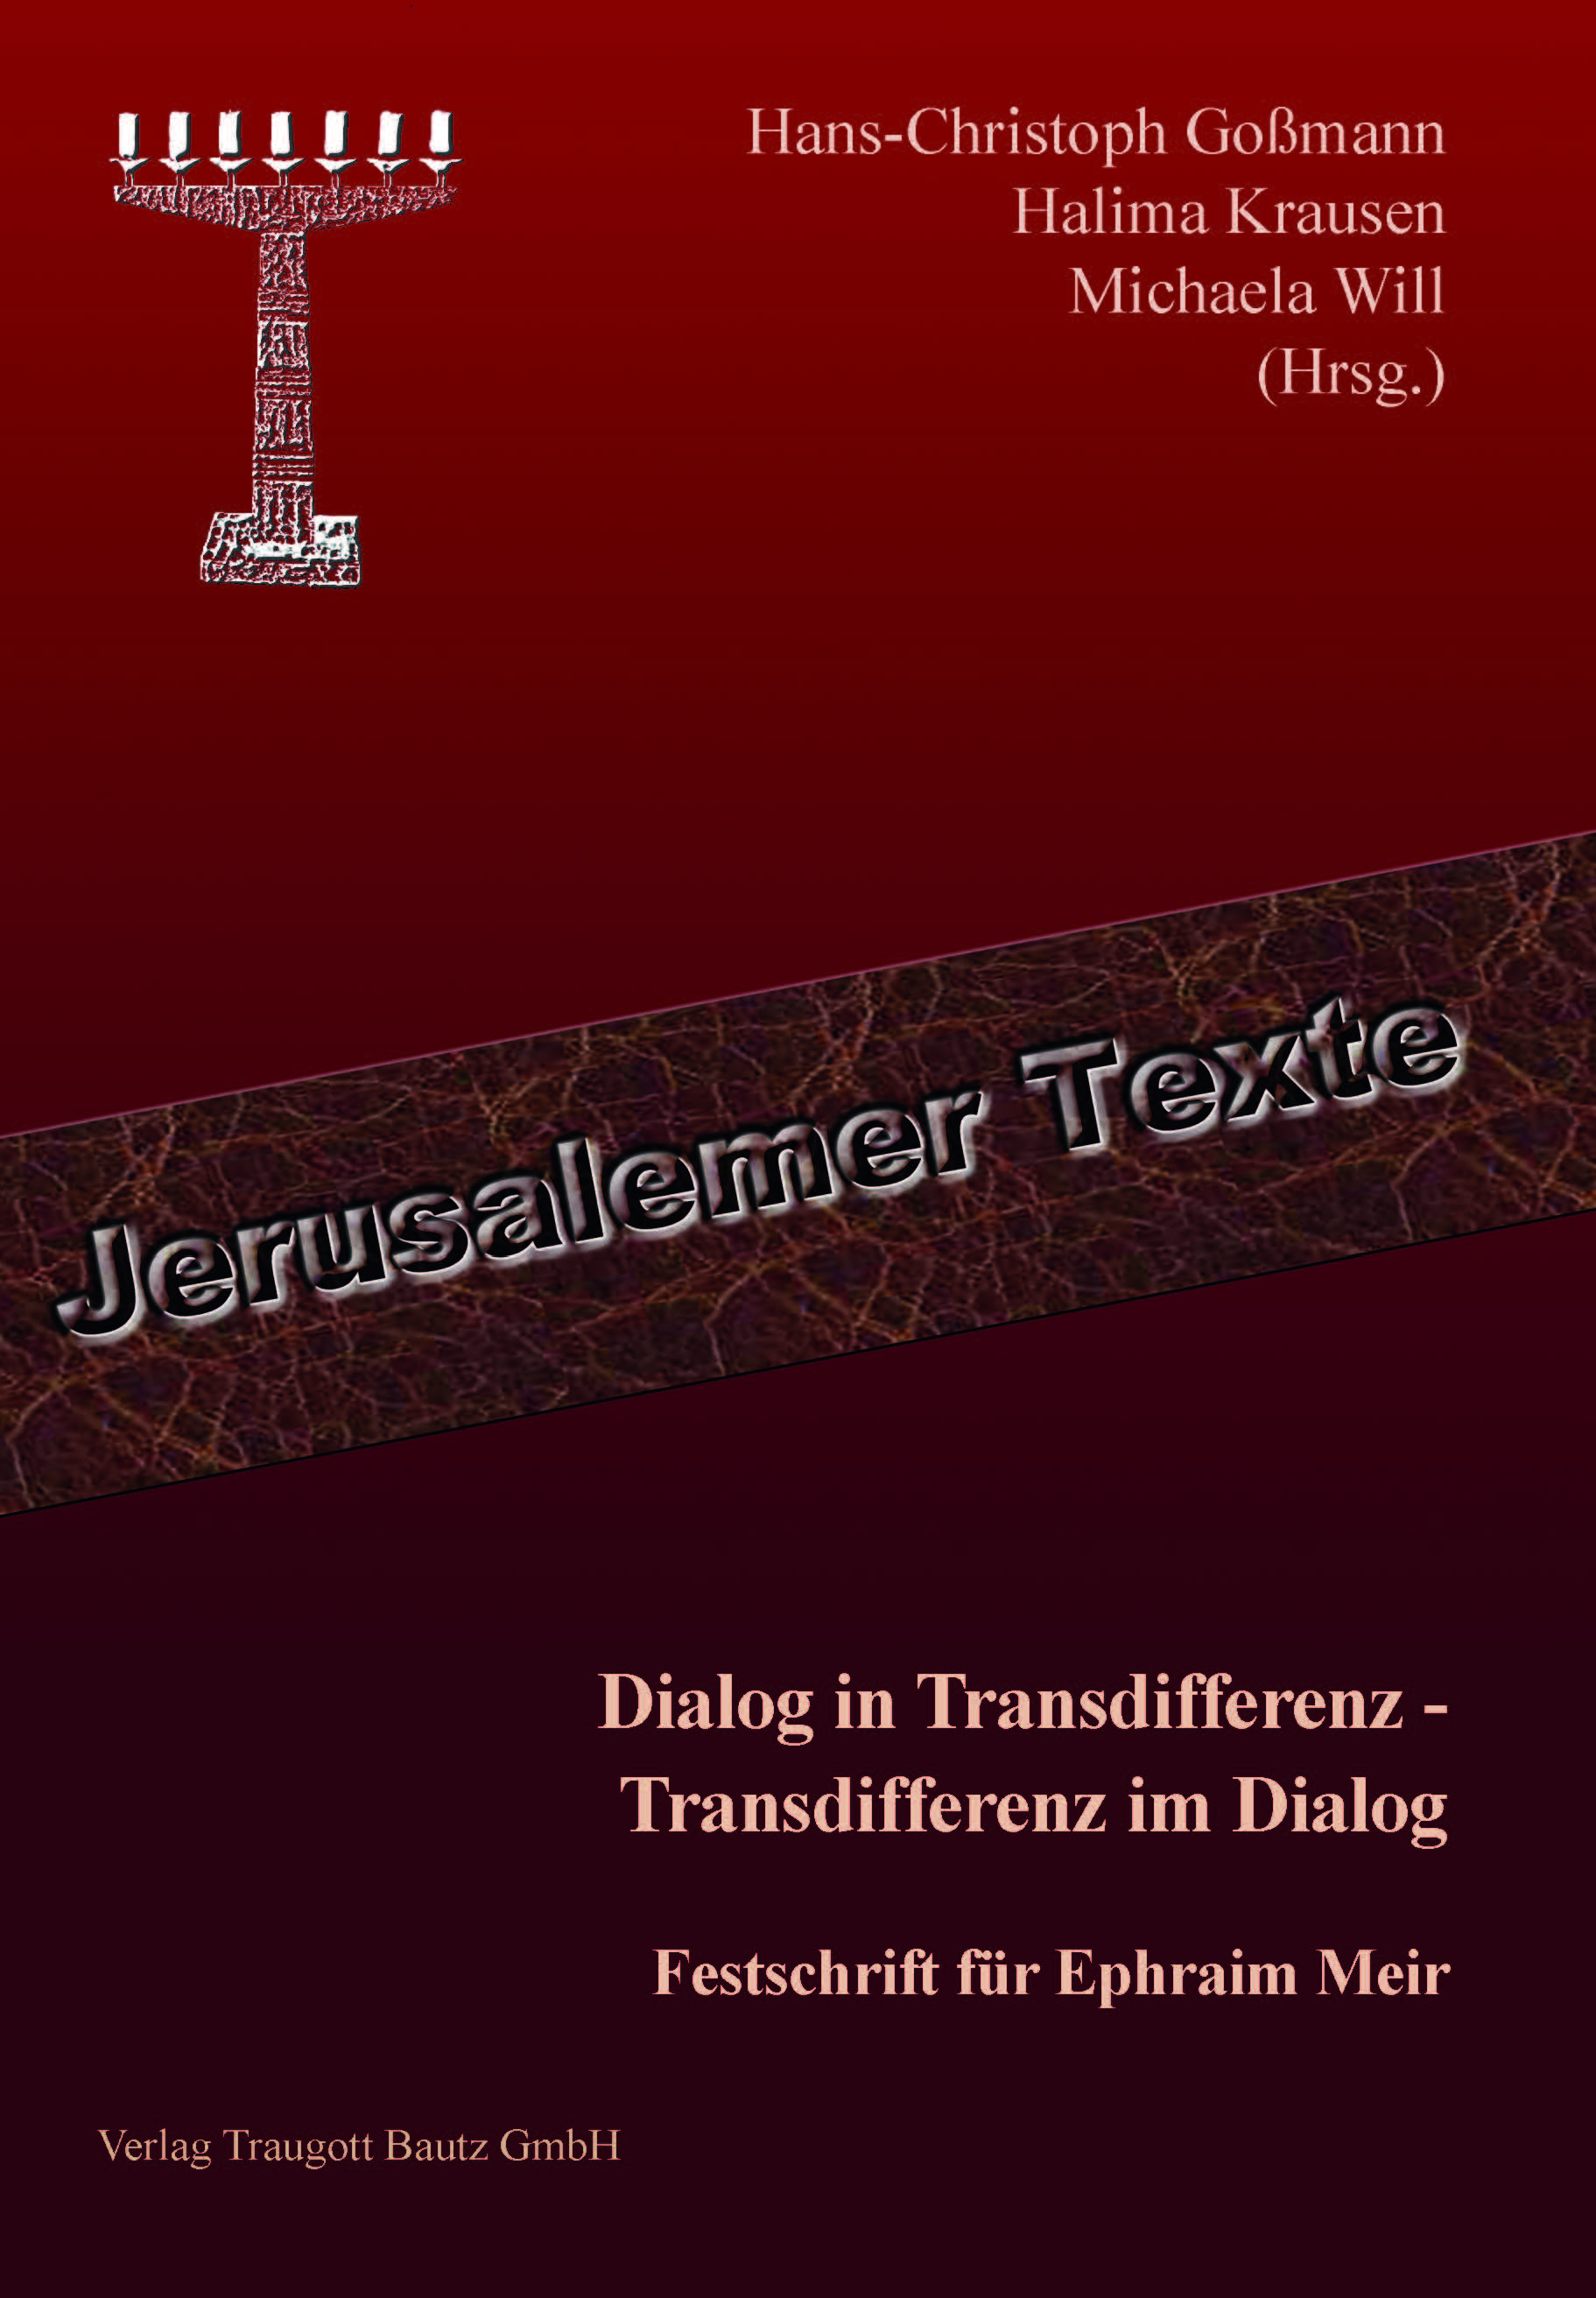 jerusalem texte band23